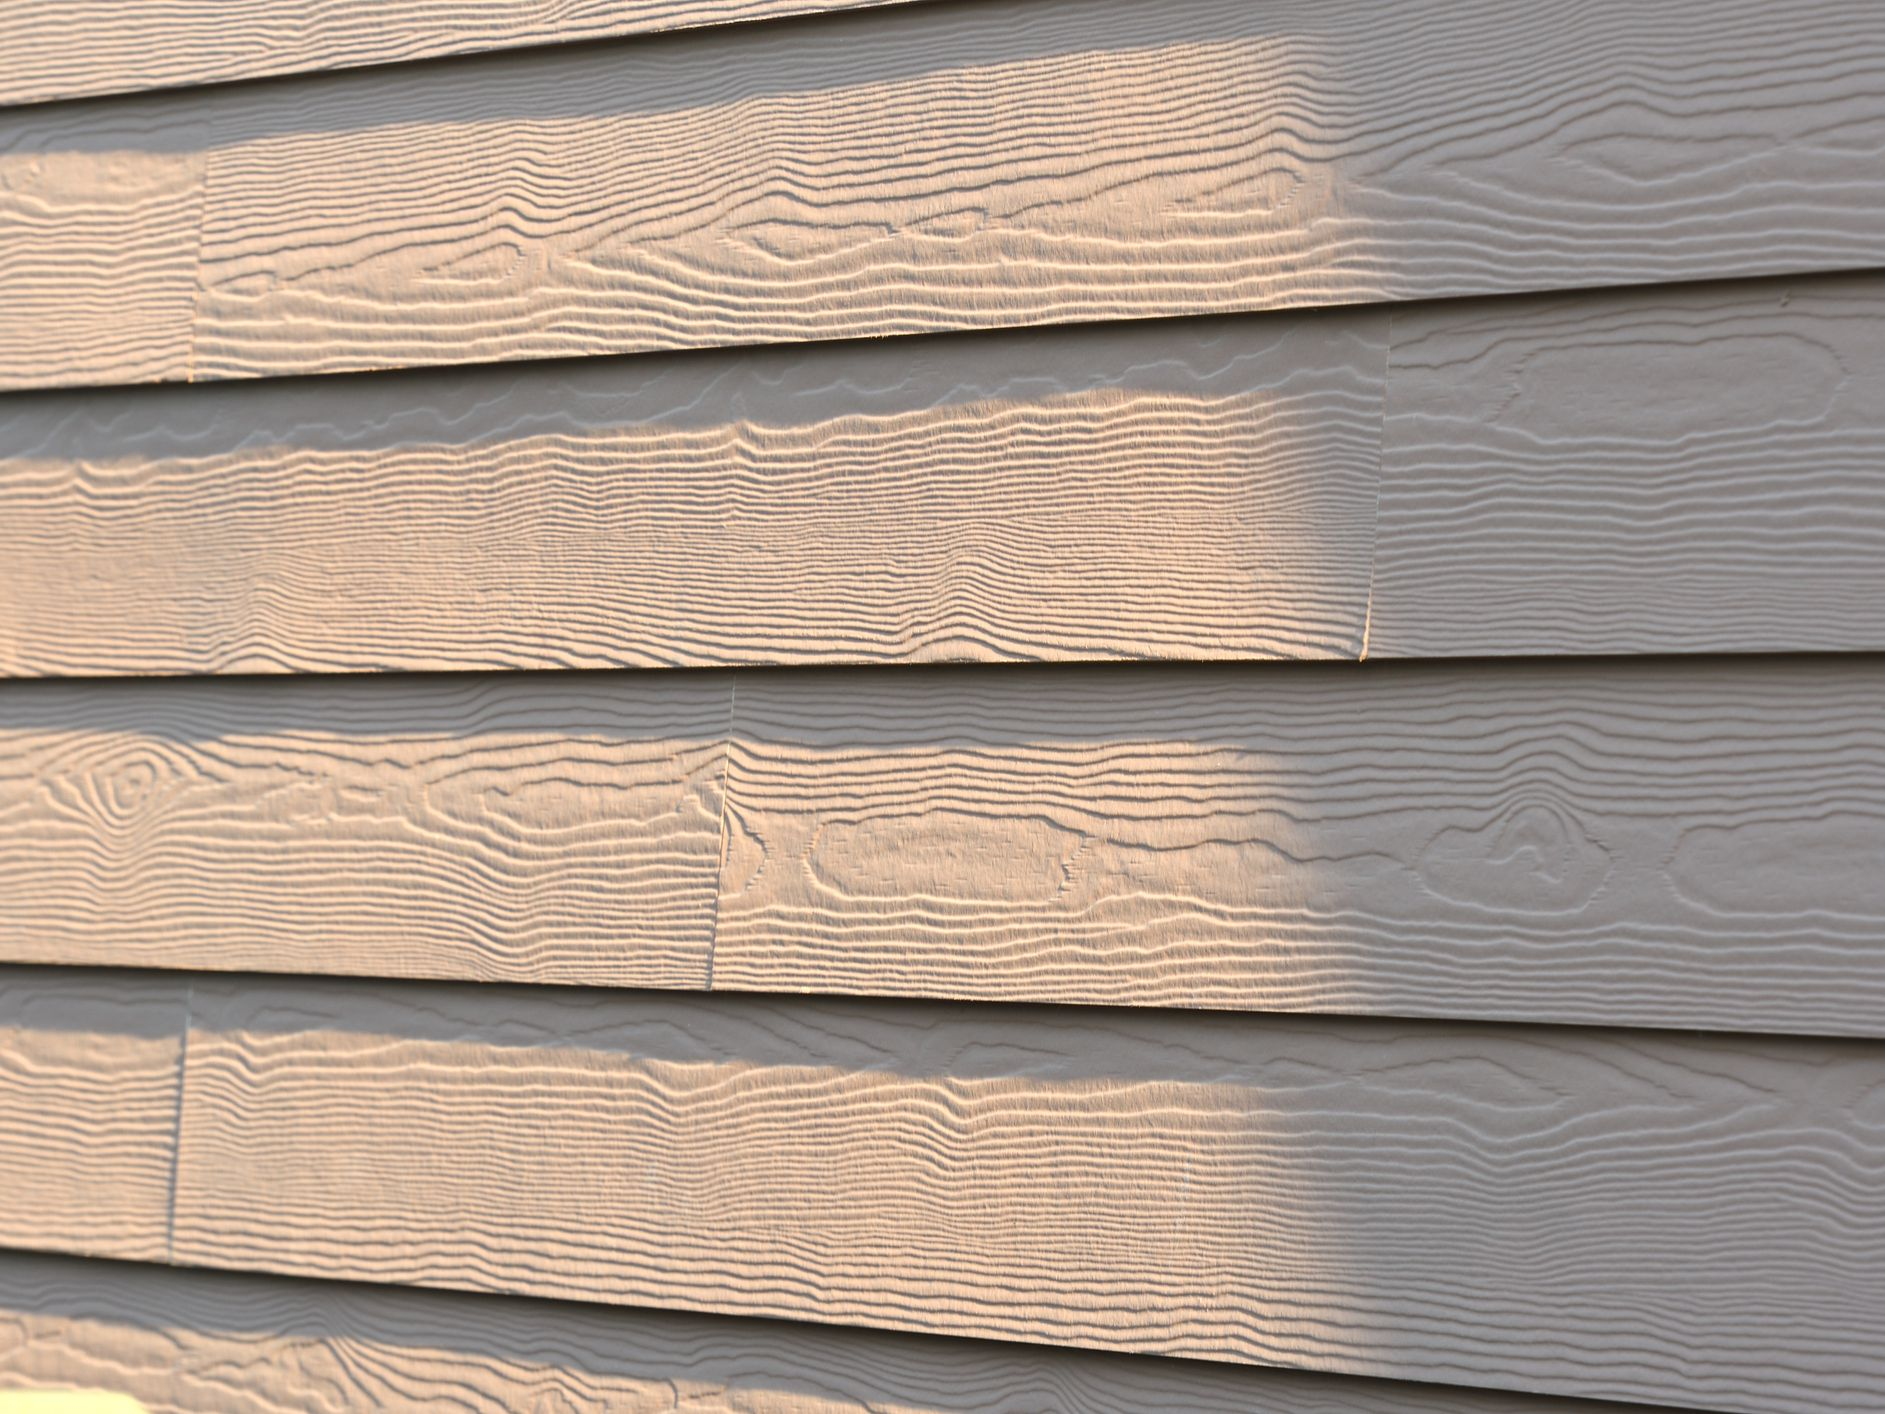 HardiePlank Siding Overview and Basics